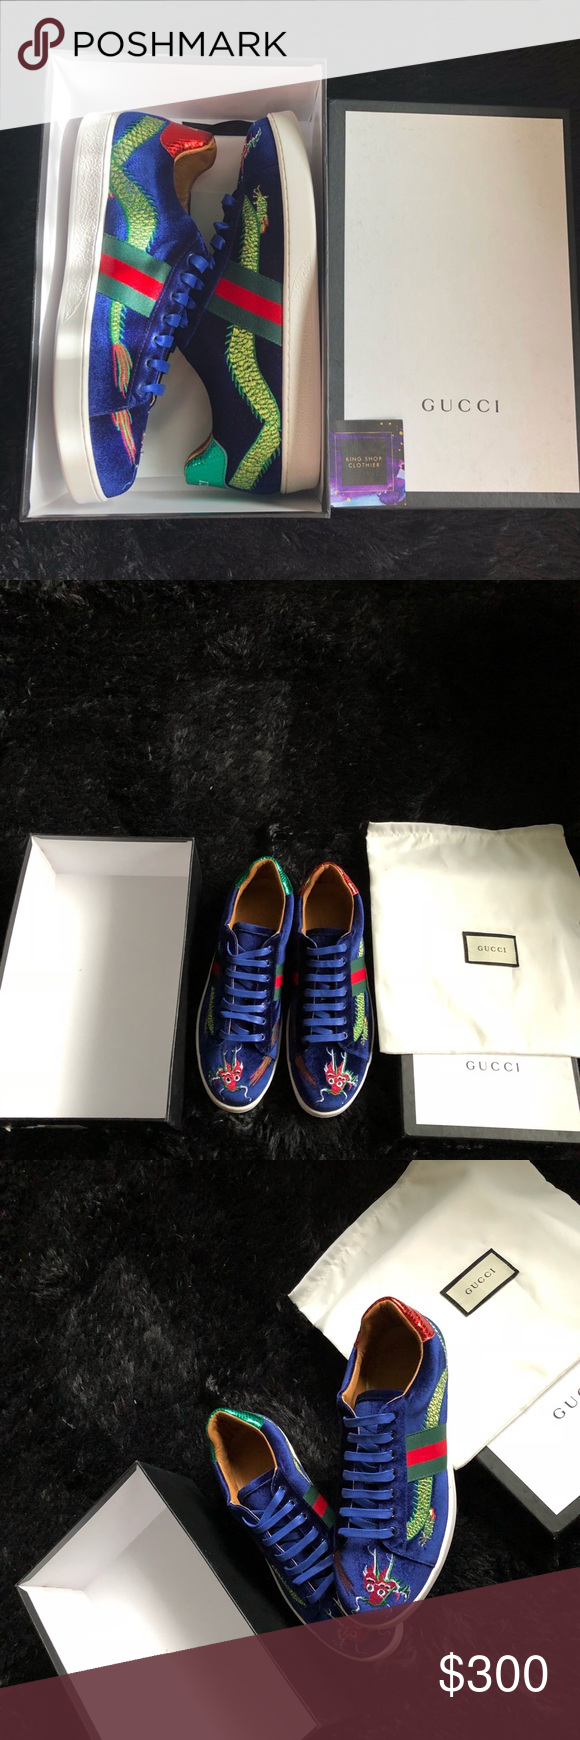 a49115276 Gucci Shoes Gucci New Ace Embroidered Velvet Low-Top Sneaker, Blue,  Embroidered Dragon